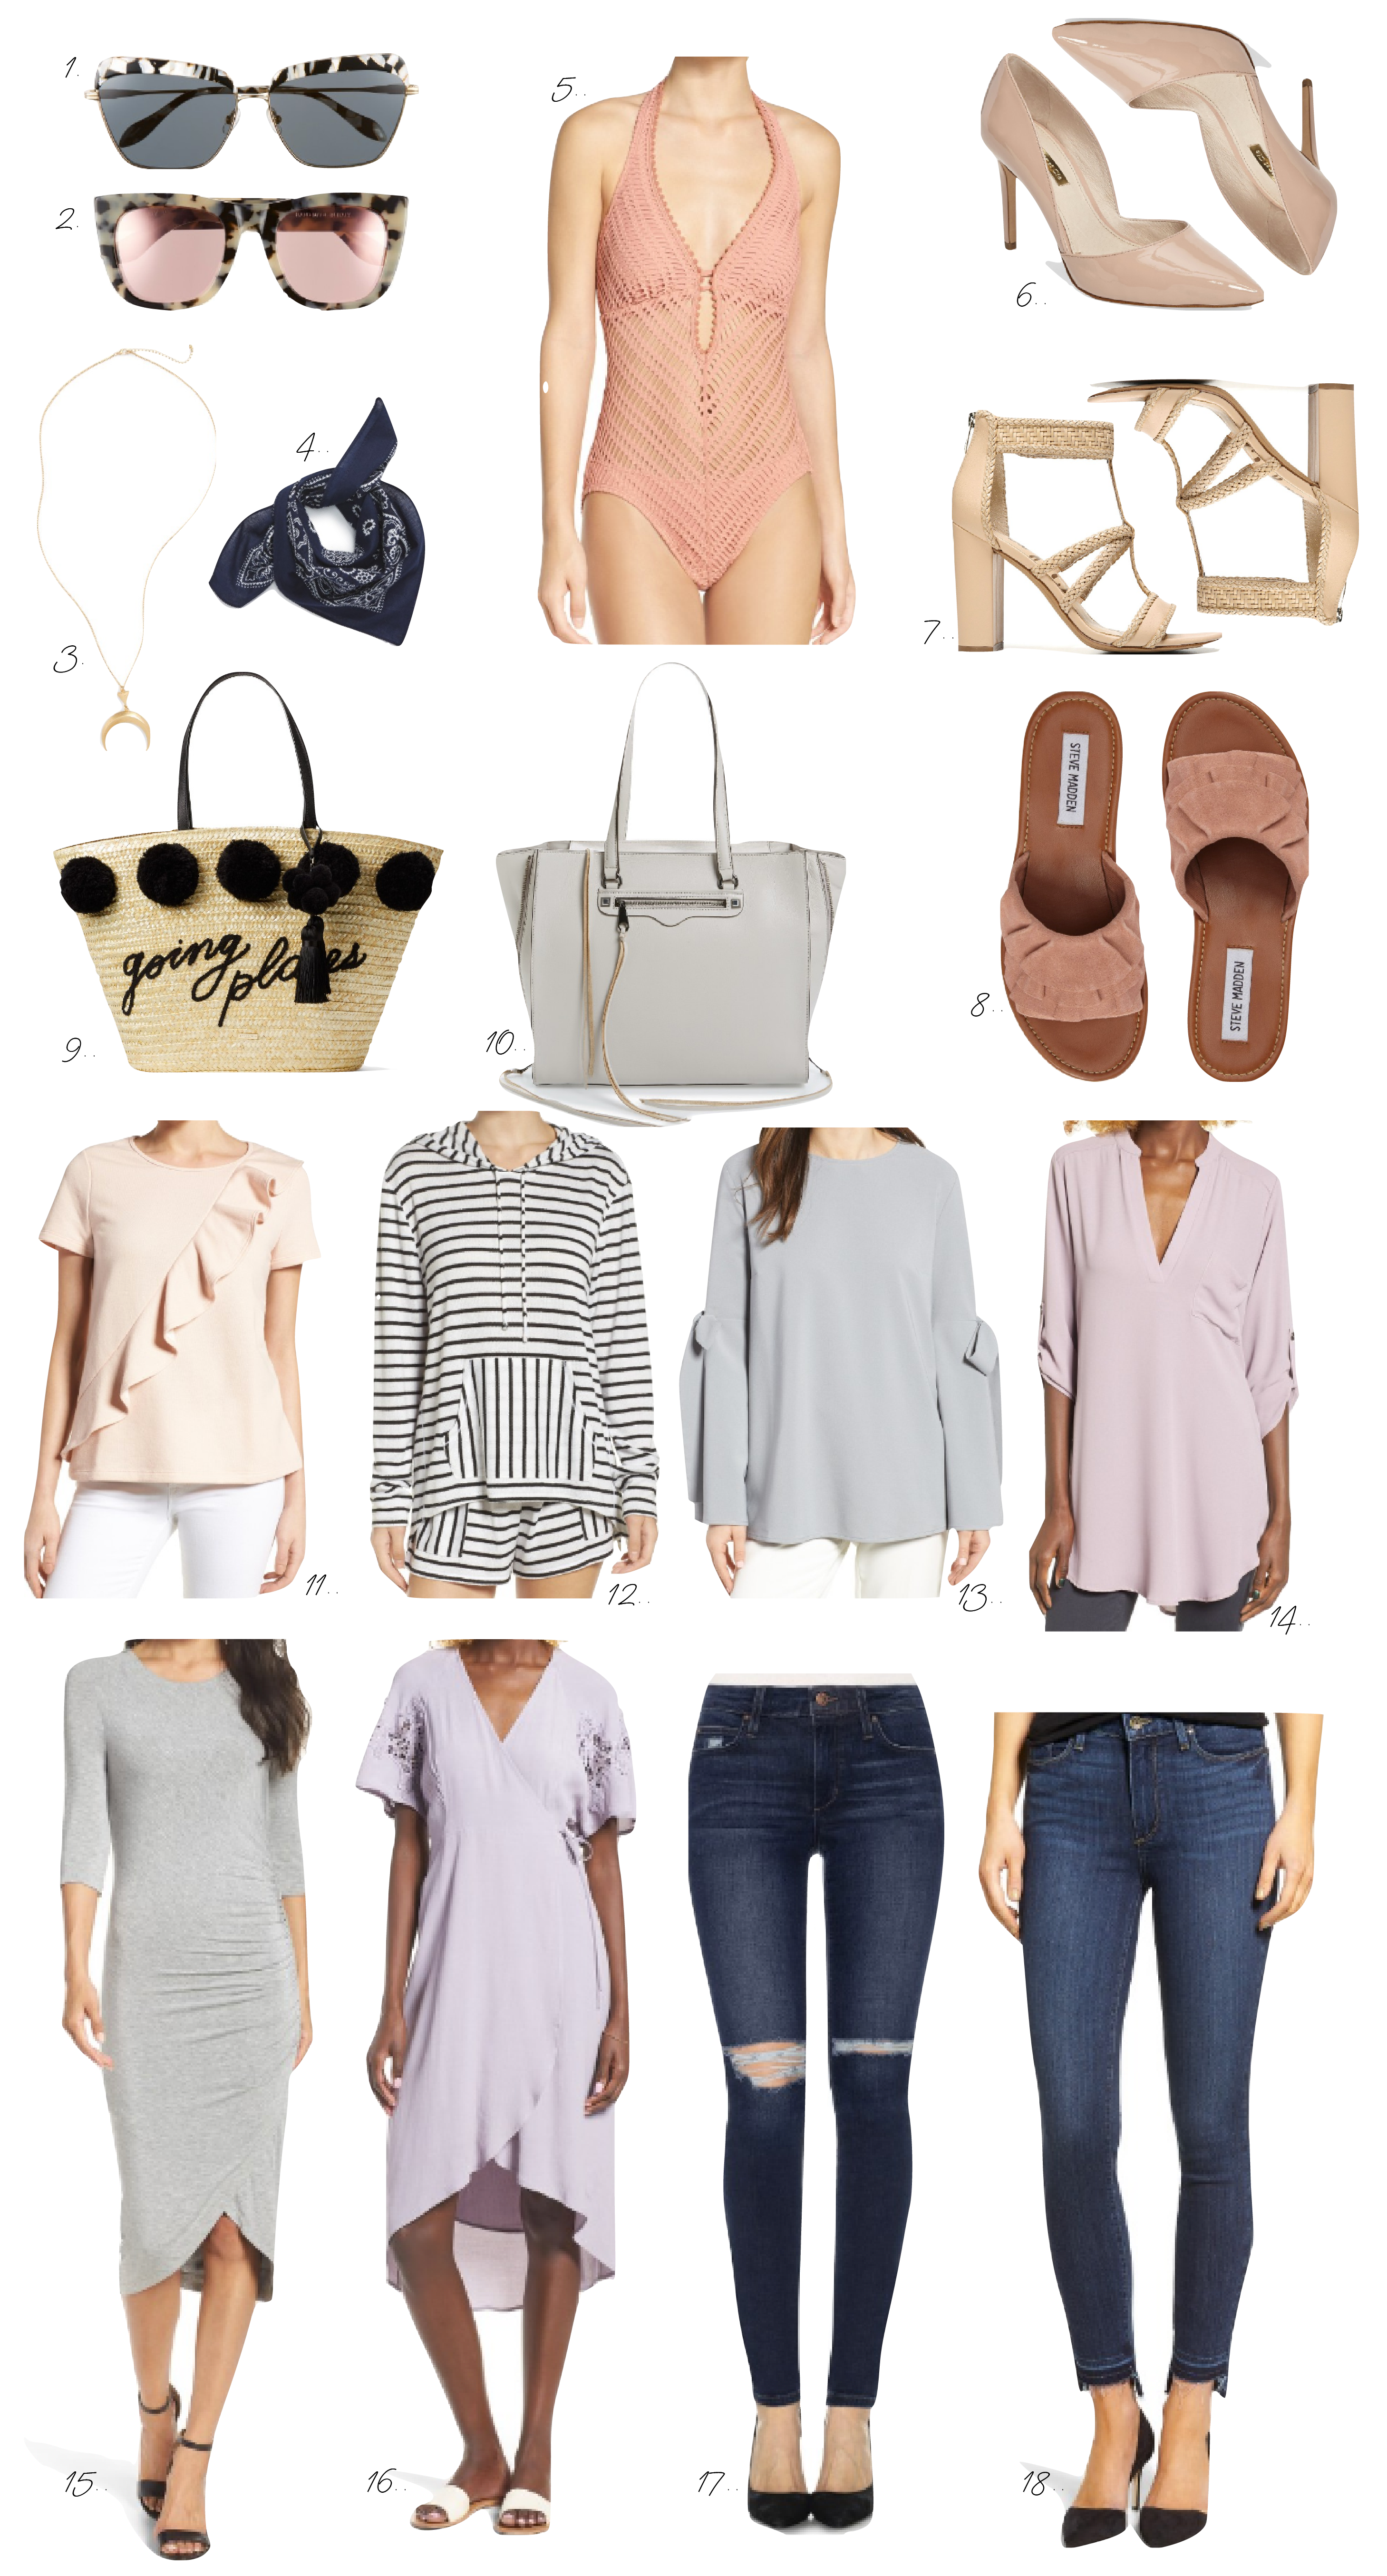 7cf11b5c05c THE BEST OF THE NORDSTROM HALF YEARLY SALE (ALL 40% OFF!) - Elle ...